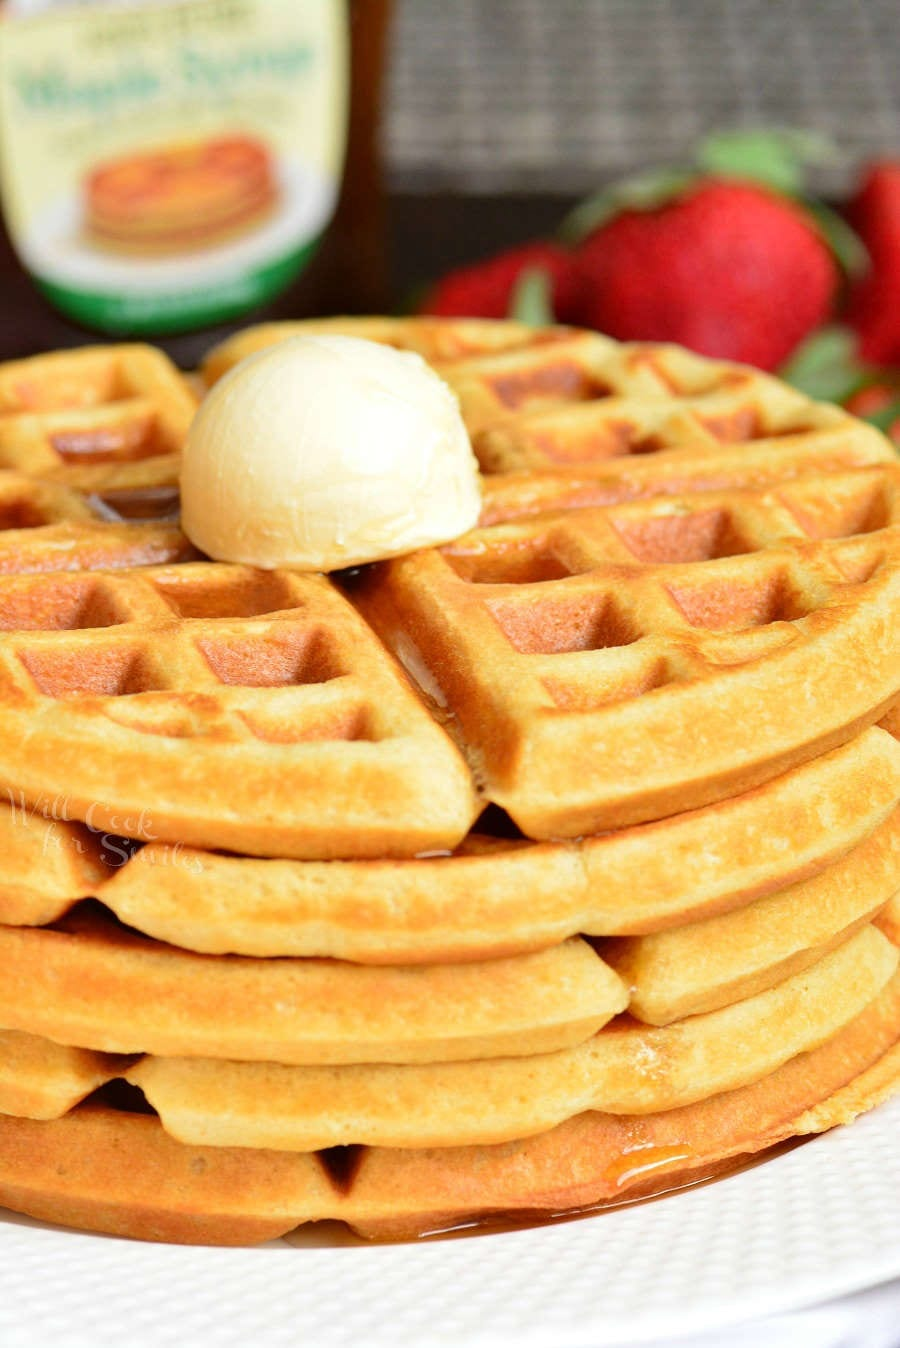 Buttermilk Waffles Recipe. These waffles are soft and fluffy on the inside and crunchy on the outside. A perfect way to start the day. #waffles #breakfast